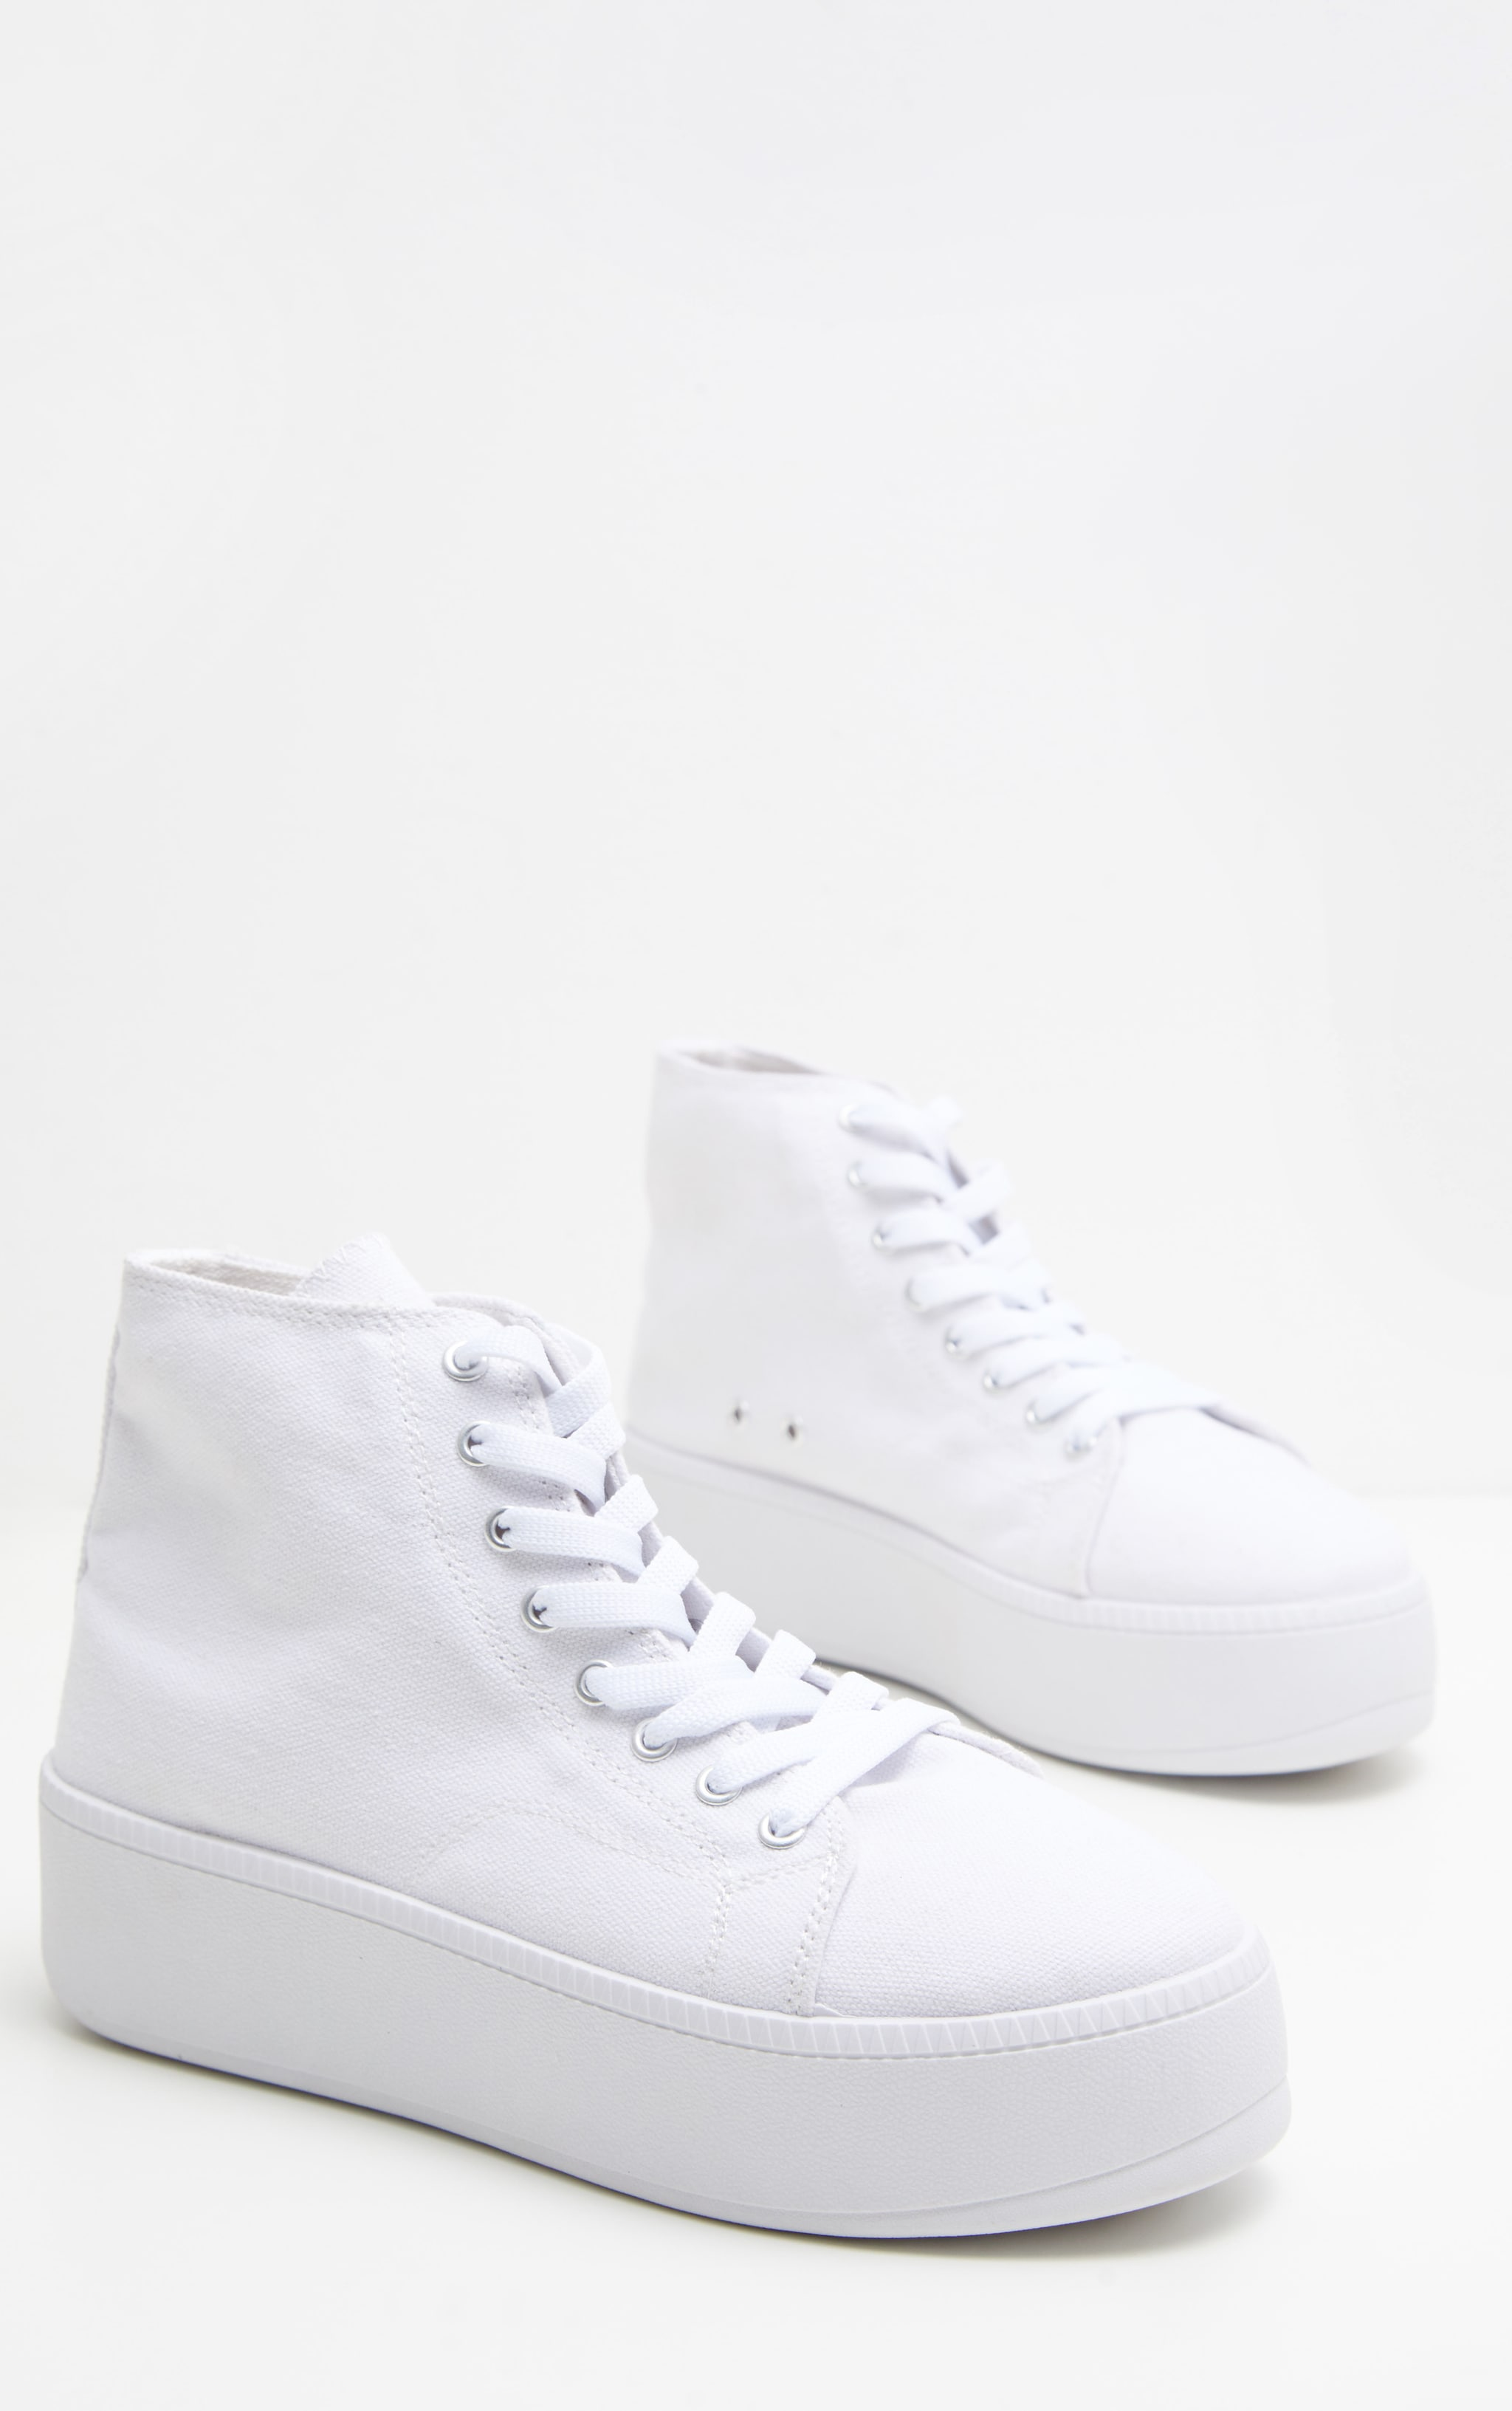 White Flatform High Top Sneakers 3